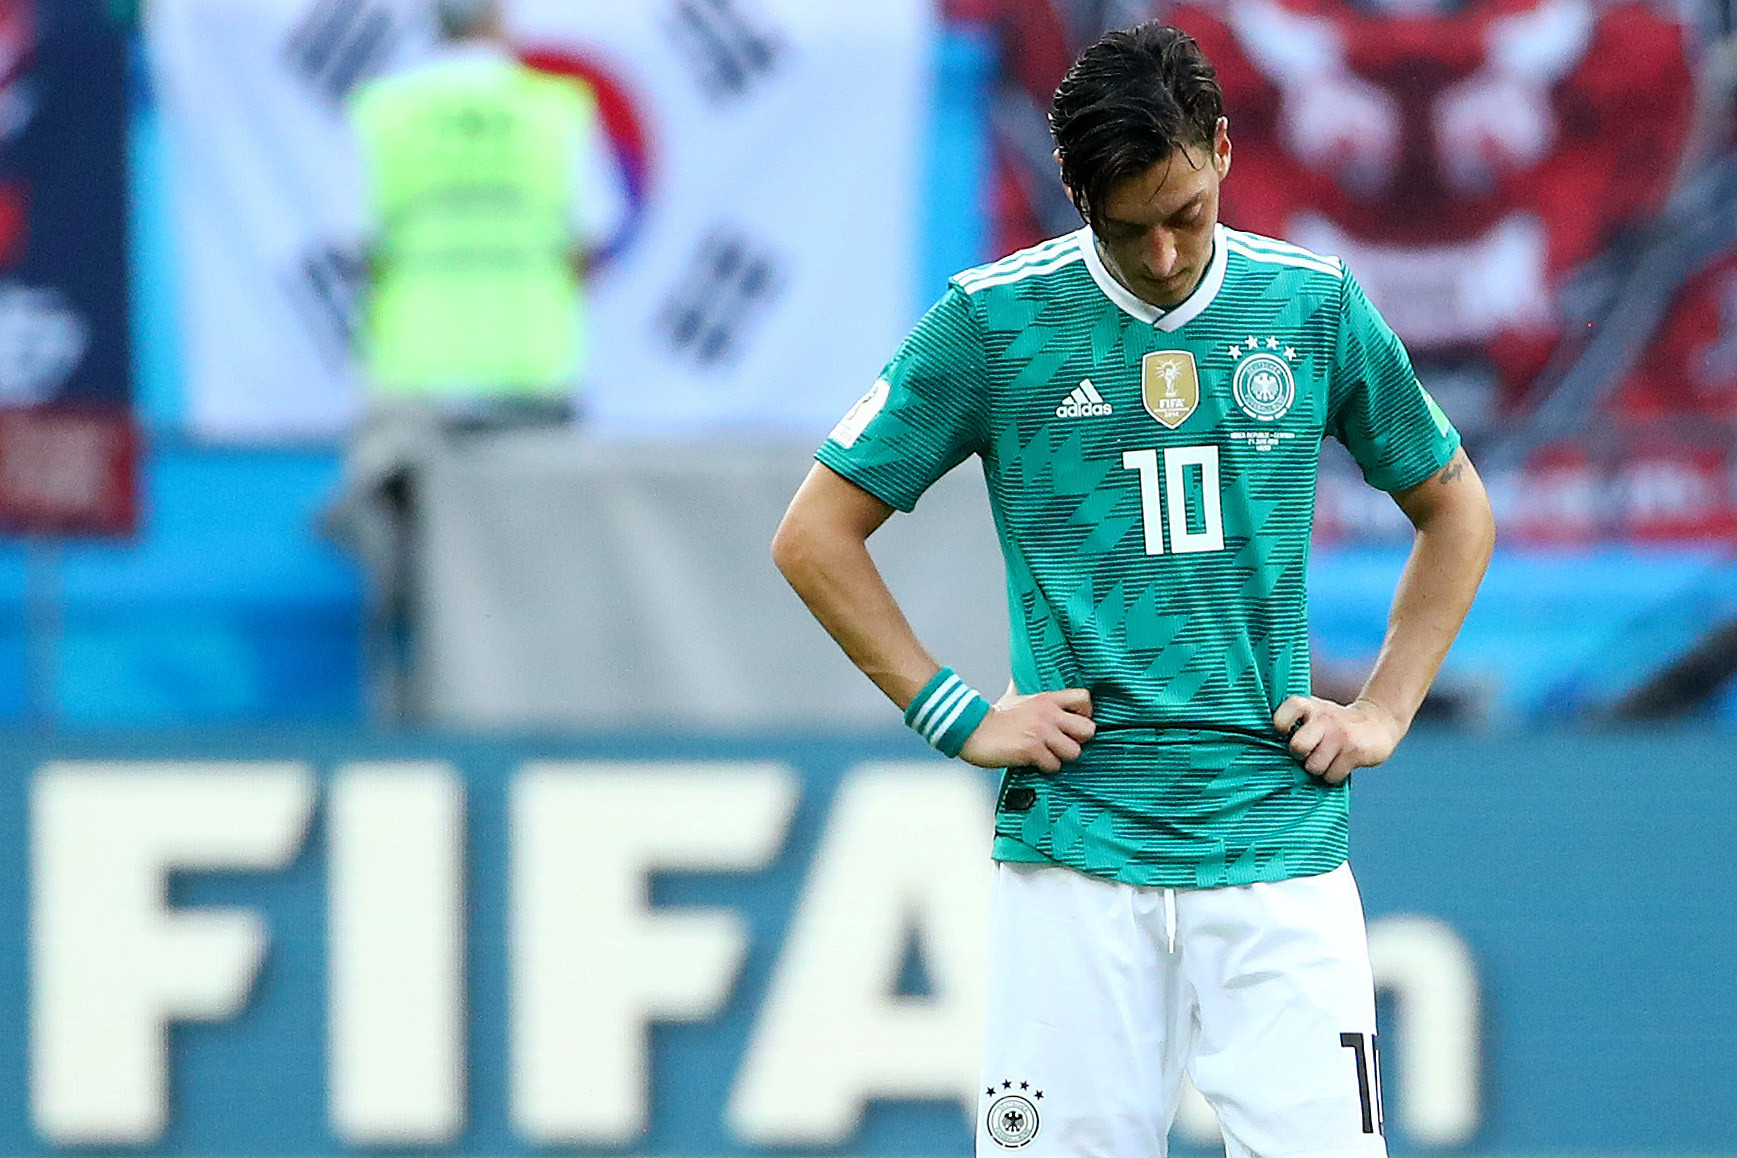 27 June 2018: Mesut Ozil looks dejected after Germany's 2-0 loss to South Korea in the group stage of the 2018 FIFA World Cup in Russia. The loss saw Germany, then defending champions, eliminated from the competition. REUTERS/Michael Dalder